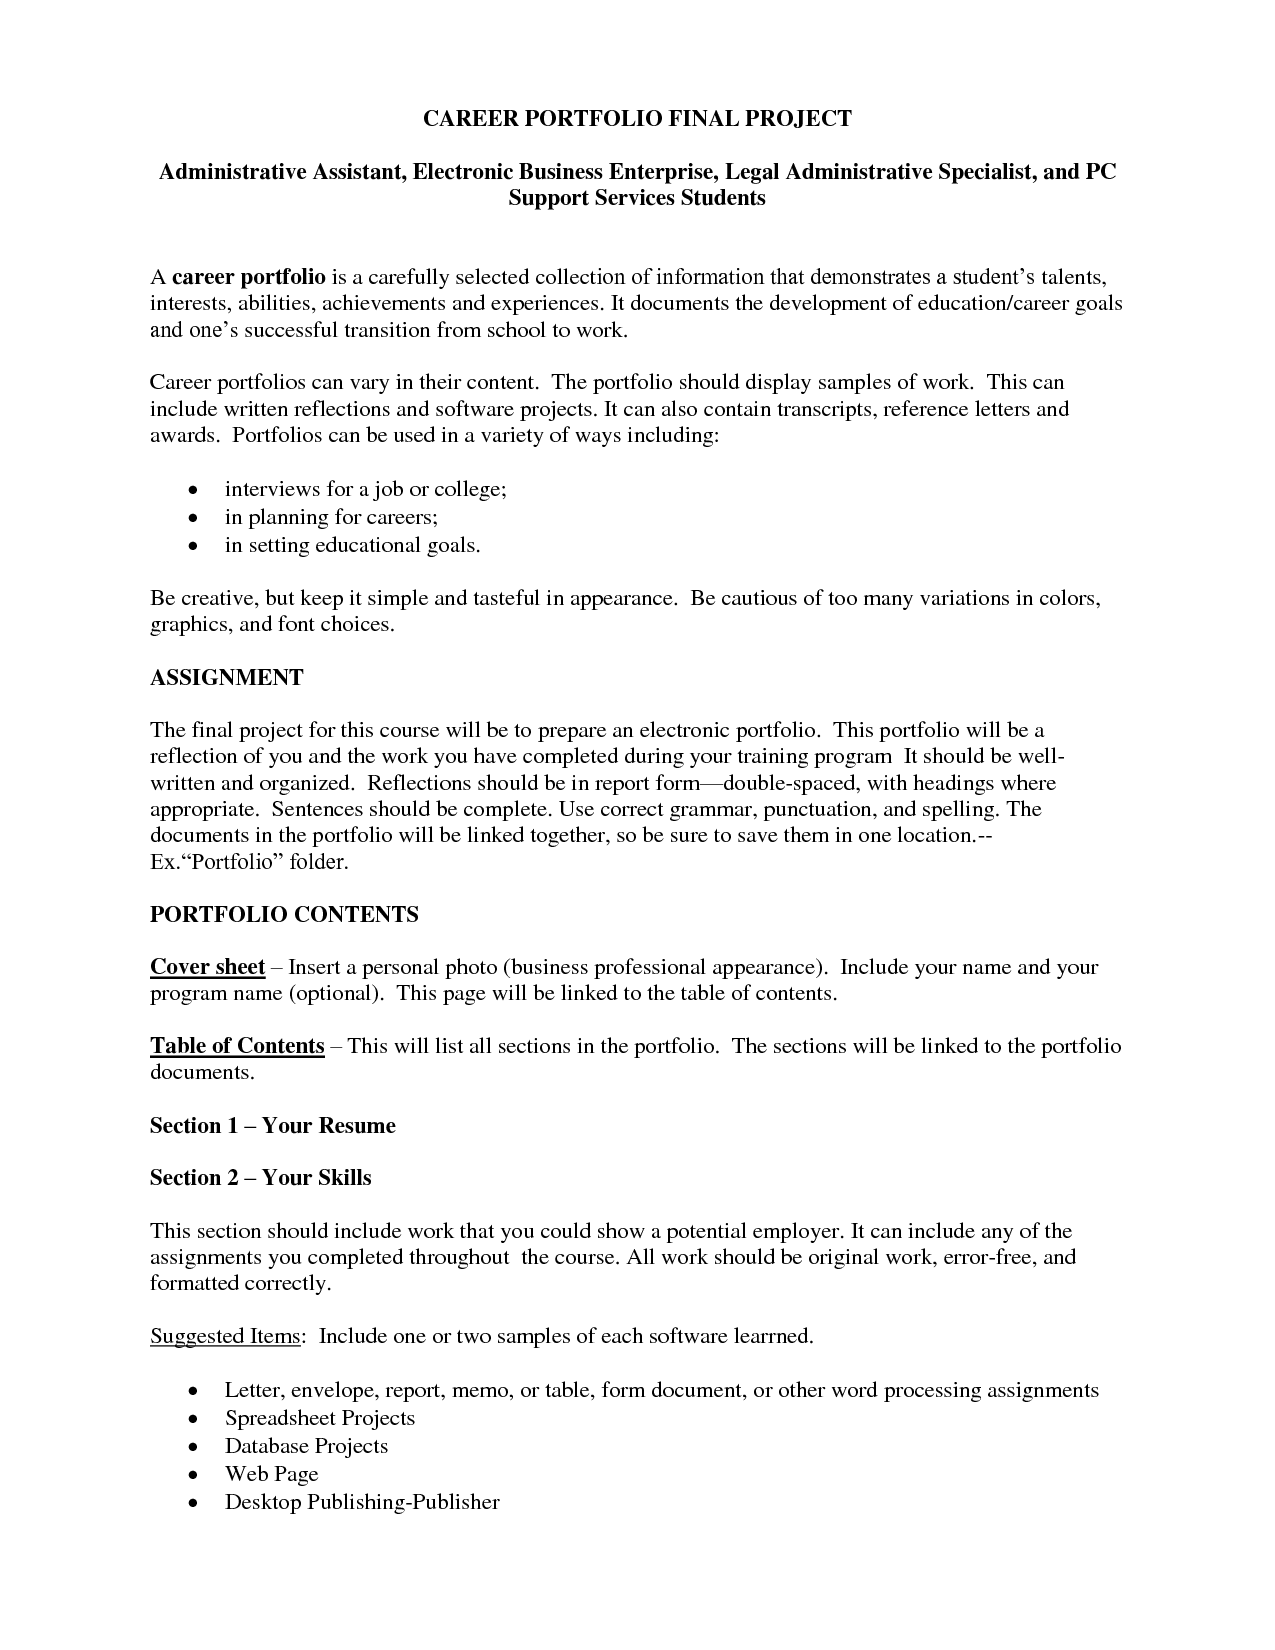 Administrative Assistant Resume Template Legal Administrative Resume Samples  Httpersumelegal